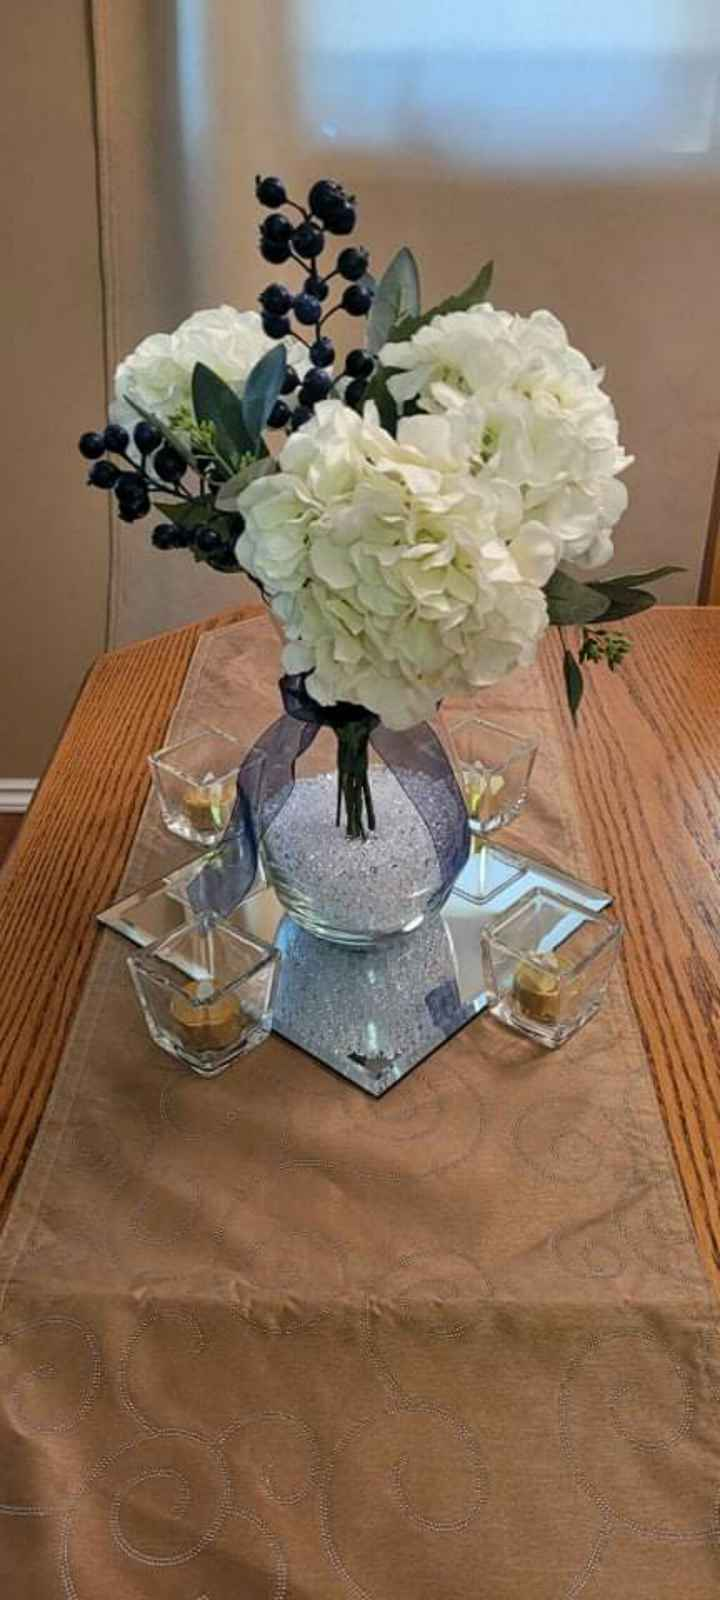 Real vs Faux Flowers for Centrepieces - 5